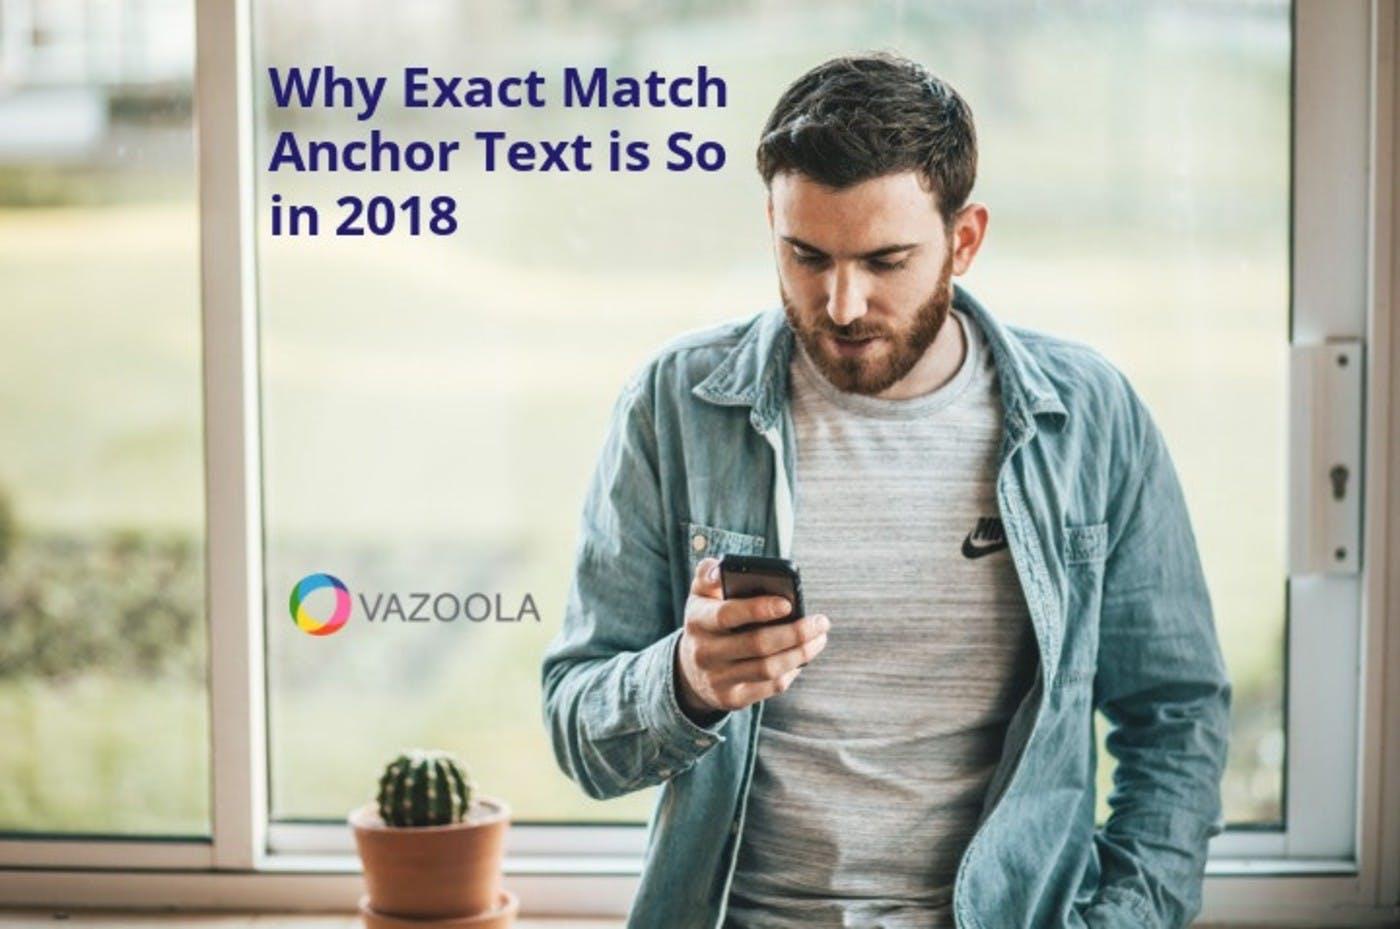 Exact Match Anchor Text is Dangerous in 2018